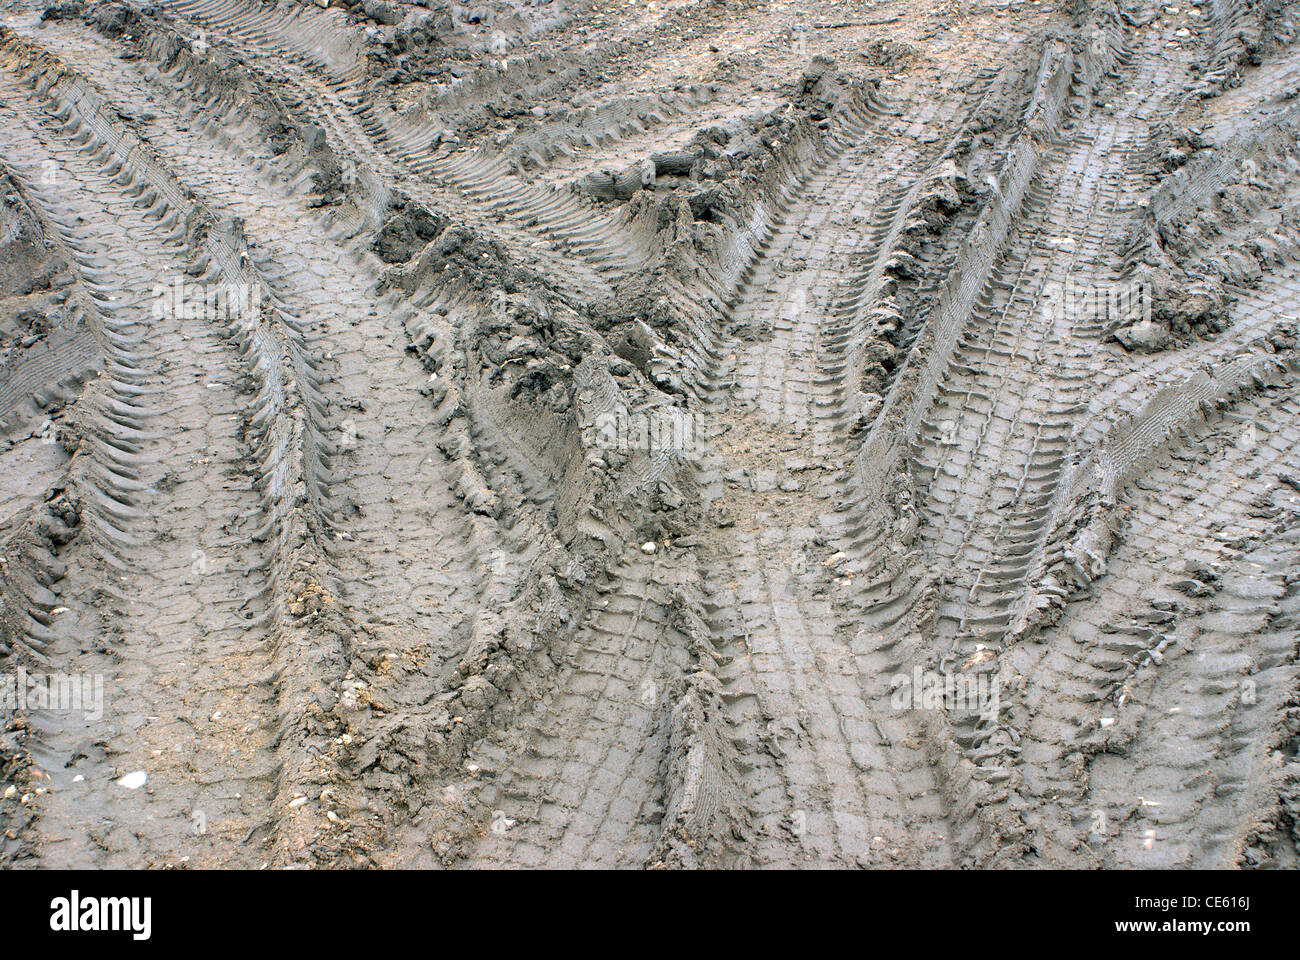 Traces on the dirty earth. - Stock Image